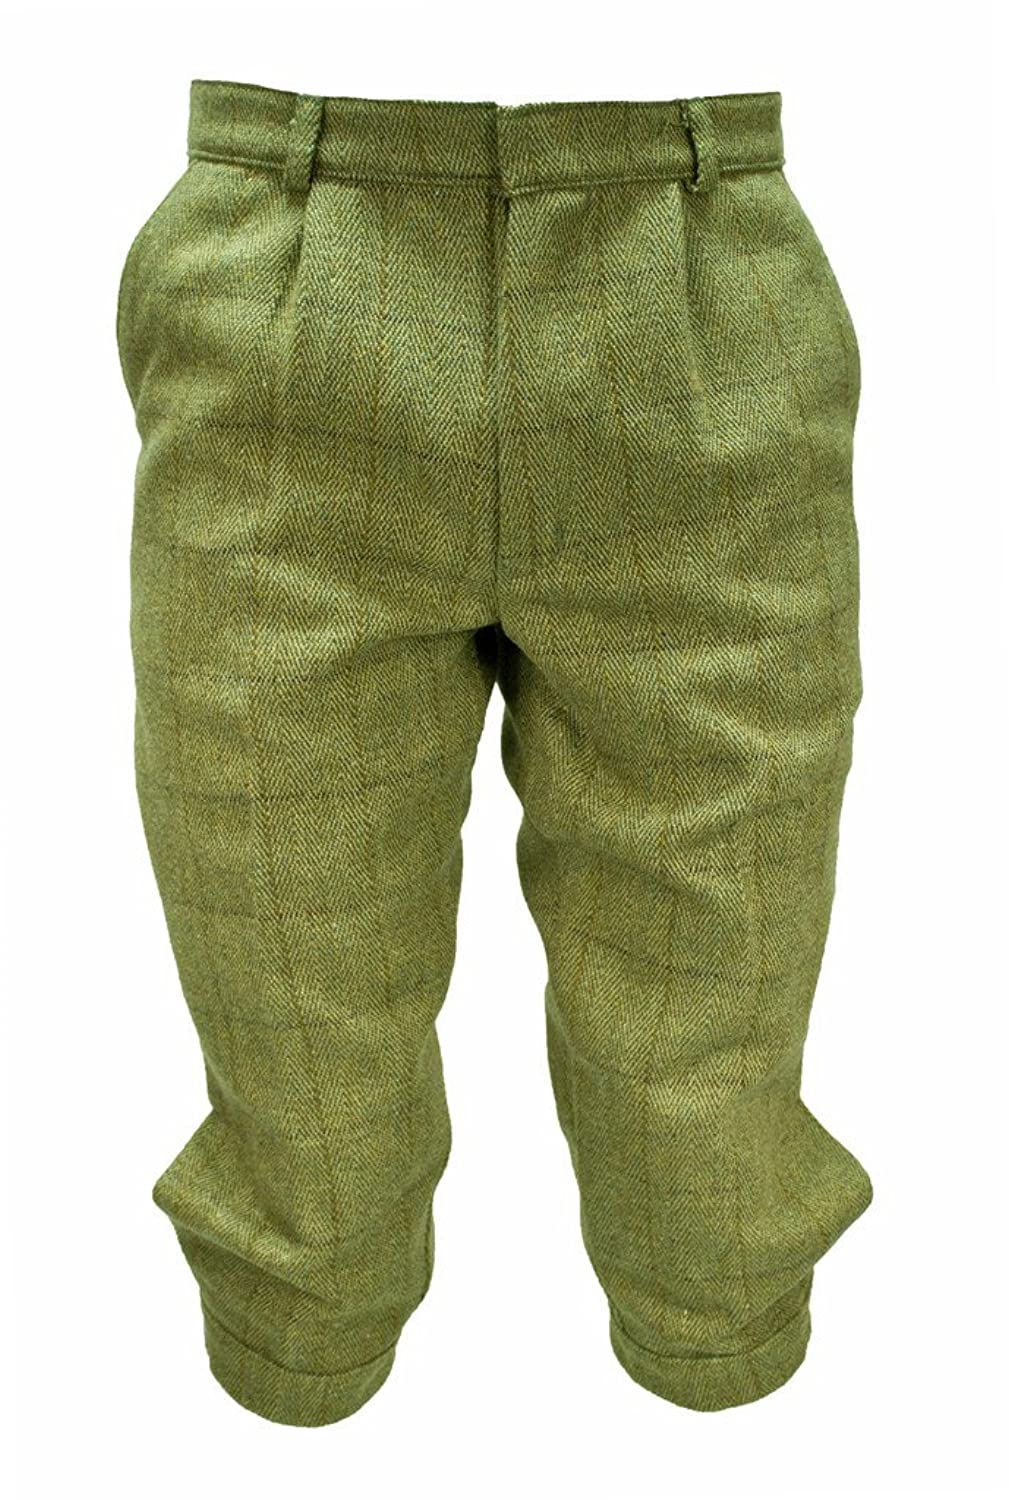 Vintage High Waisted Trousers, Sailor Pants, Jeans Tweed Breeks Trousers Pants Plus Fours by WWK / WorkWear King $54.95 AT vintagedancer.com